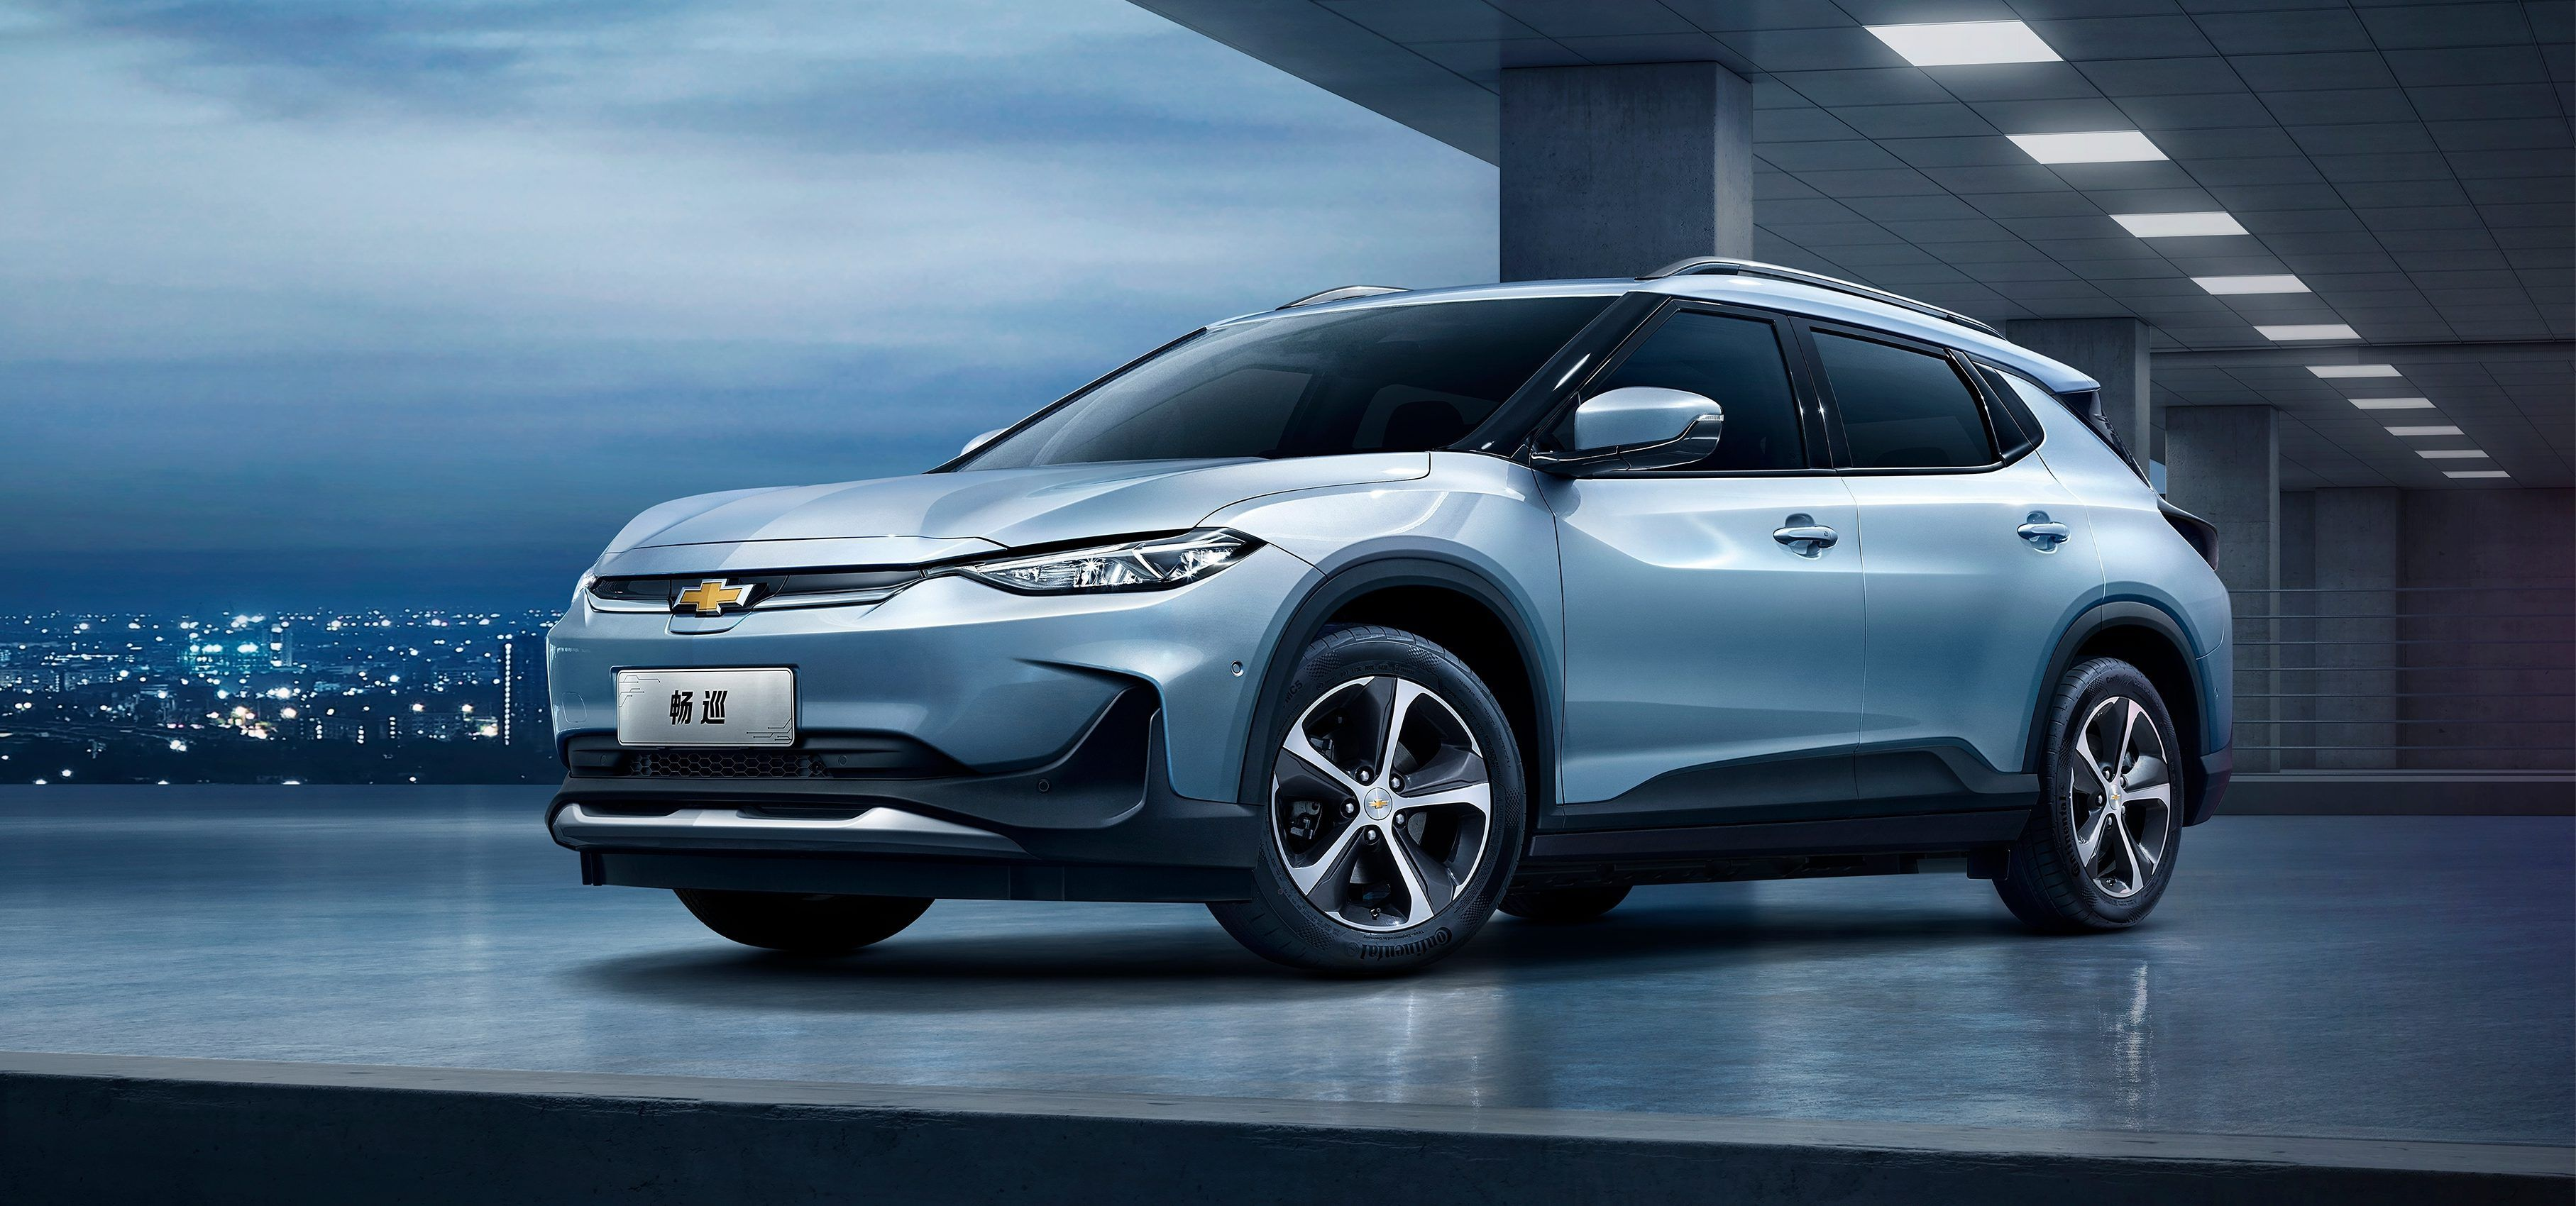 Gm Launches Menlo Electric Car With 250 Miles Of Range For Just 23 000 But You Can T Buy It In 2020 Electric Cars Electric Car Range Car